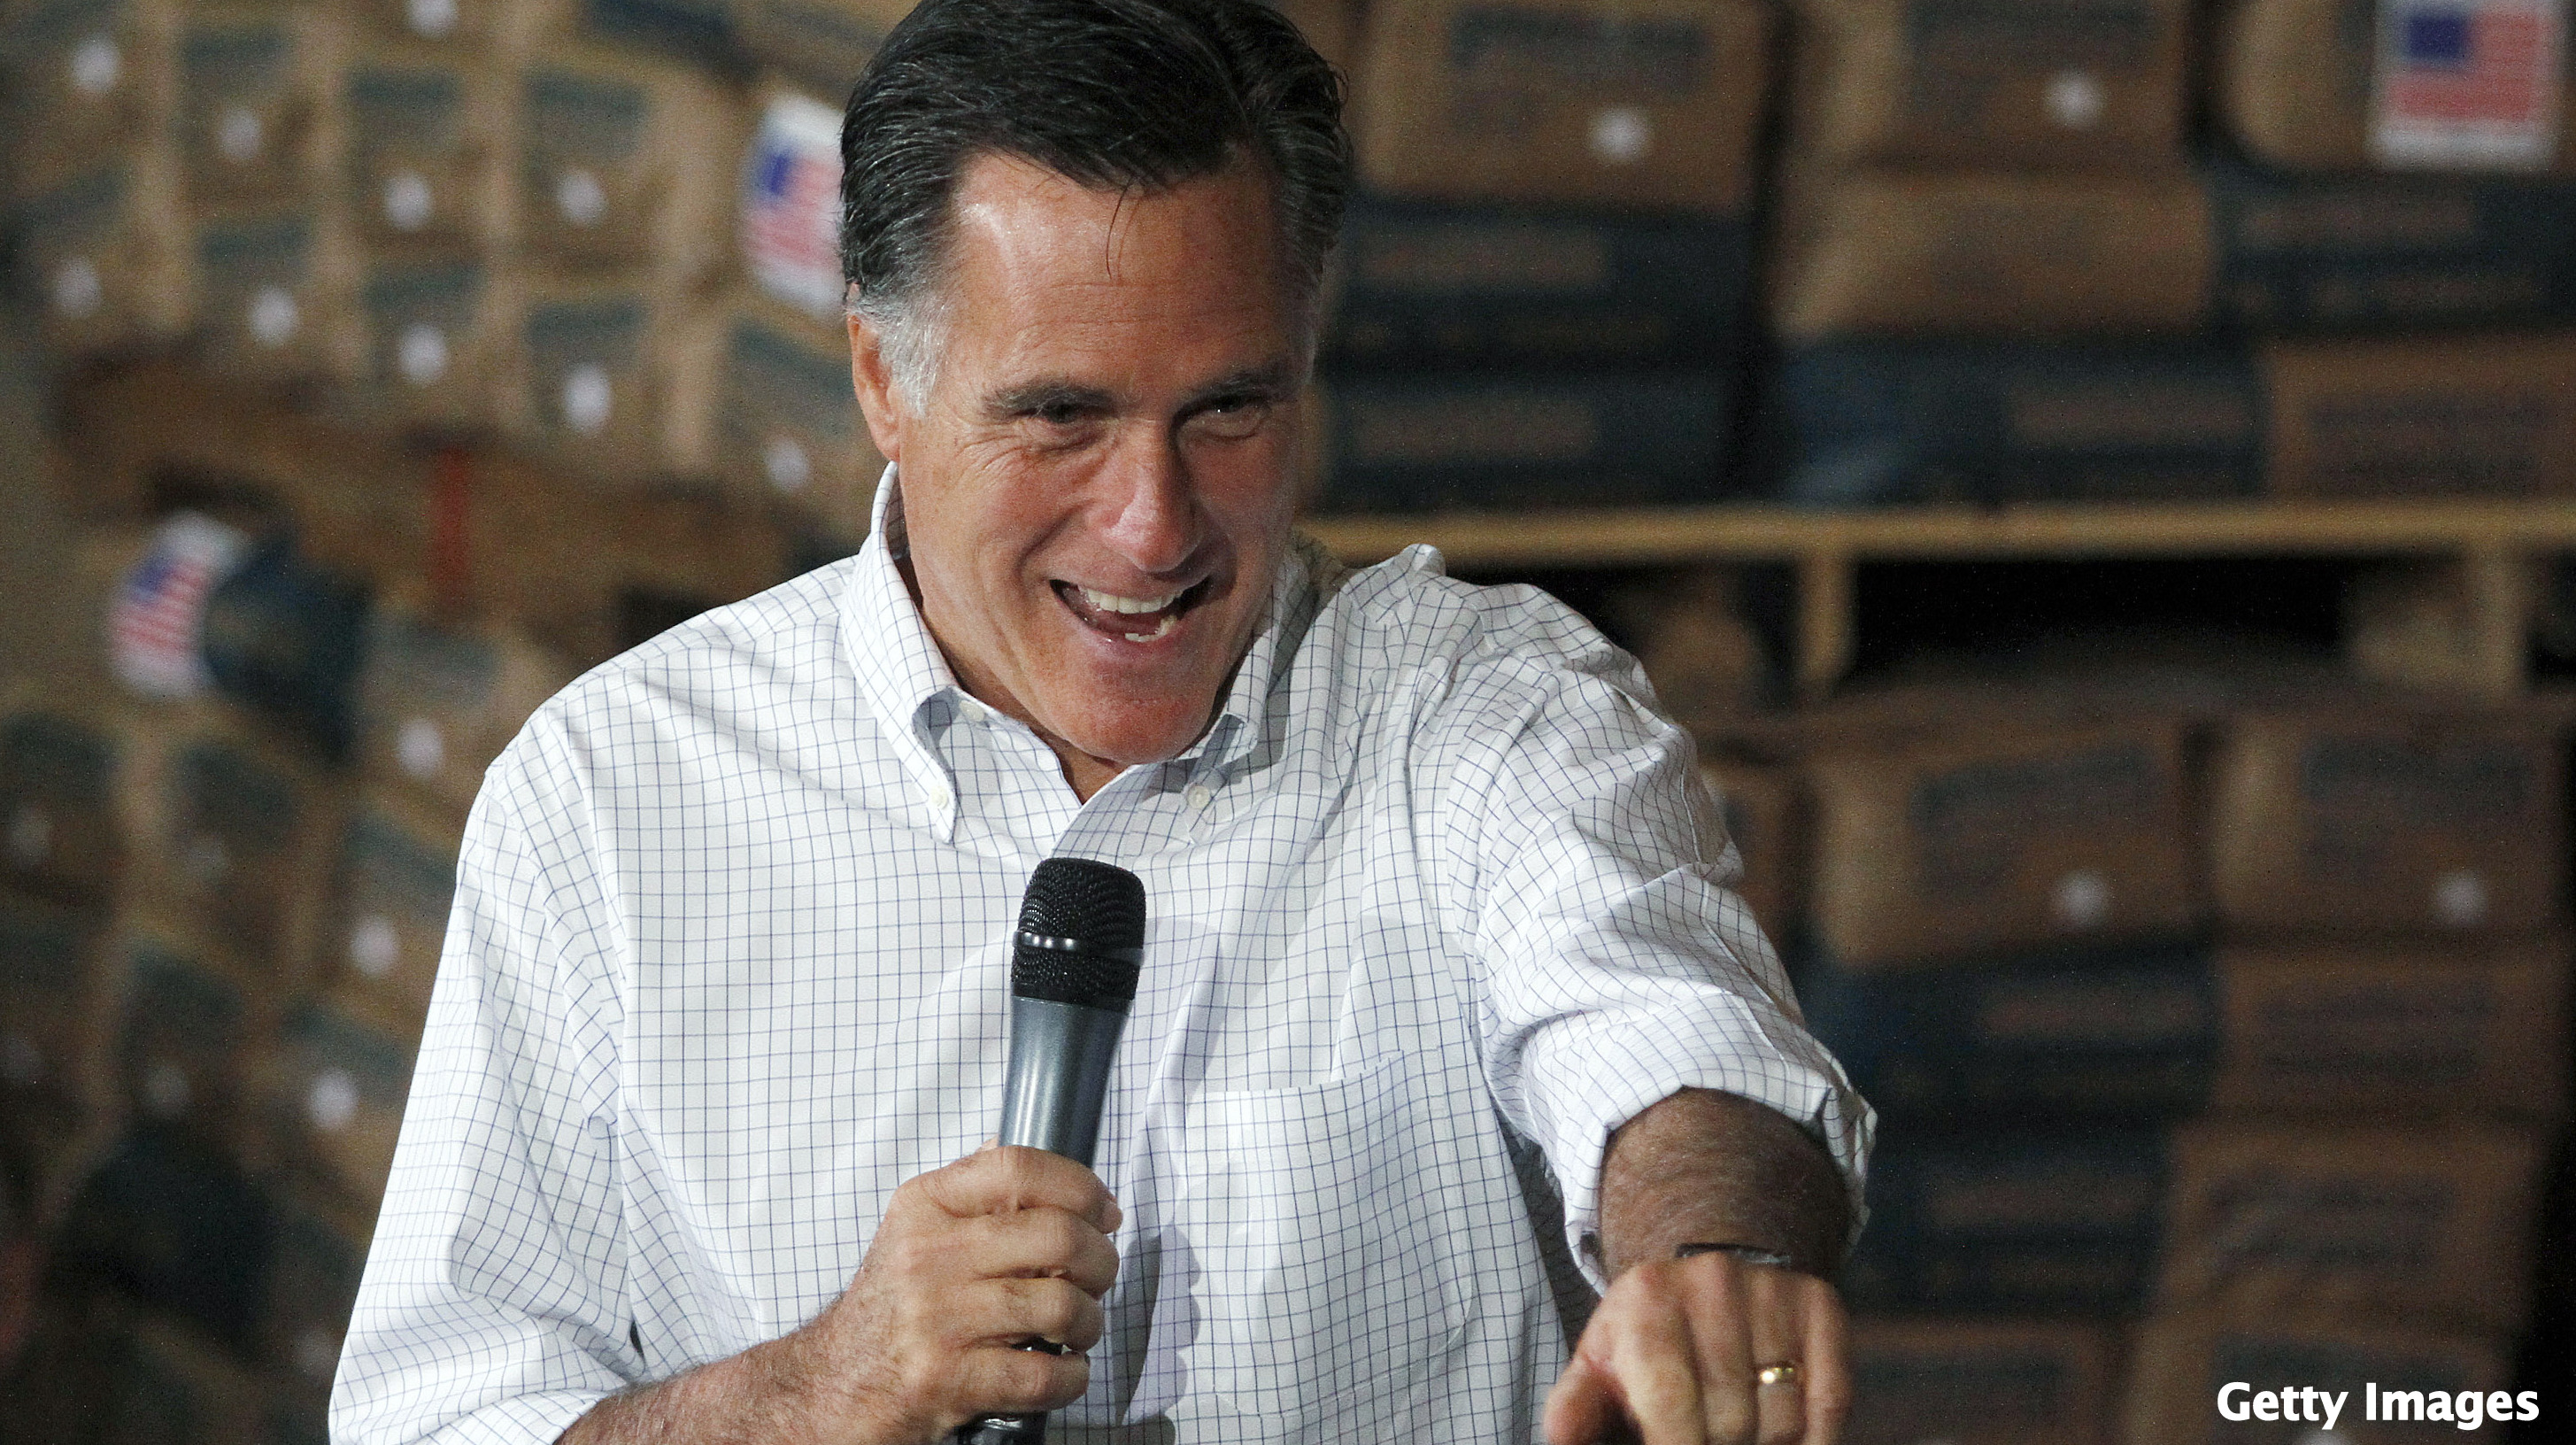 Romney campaign and allies far outspending Democrats